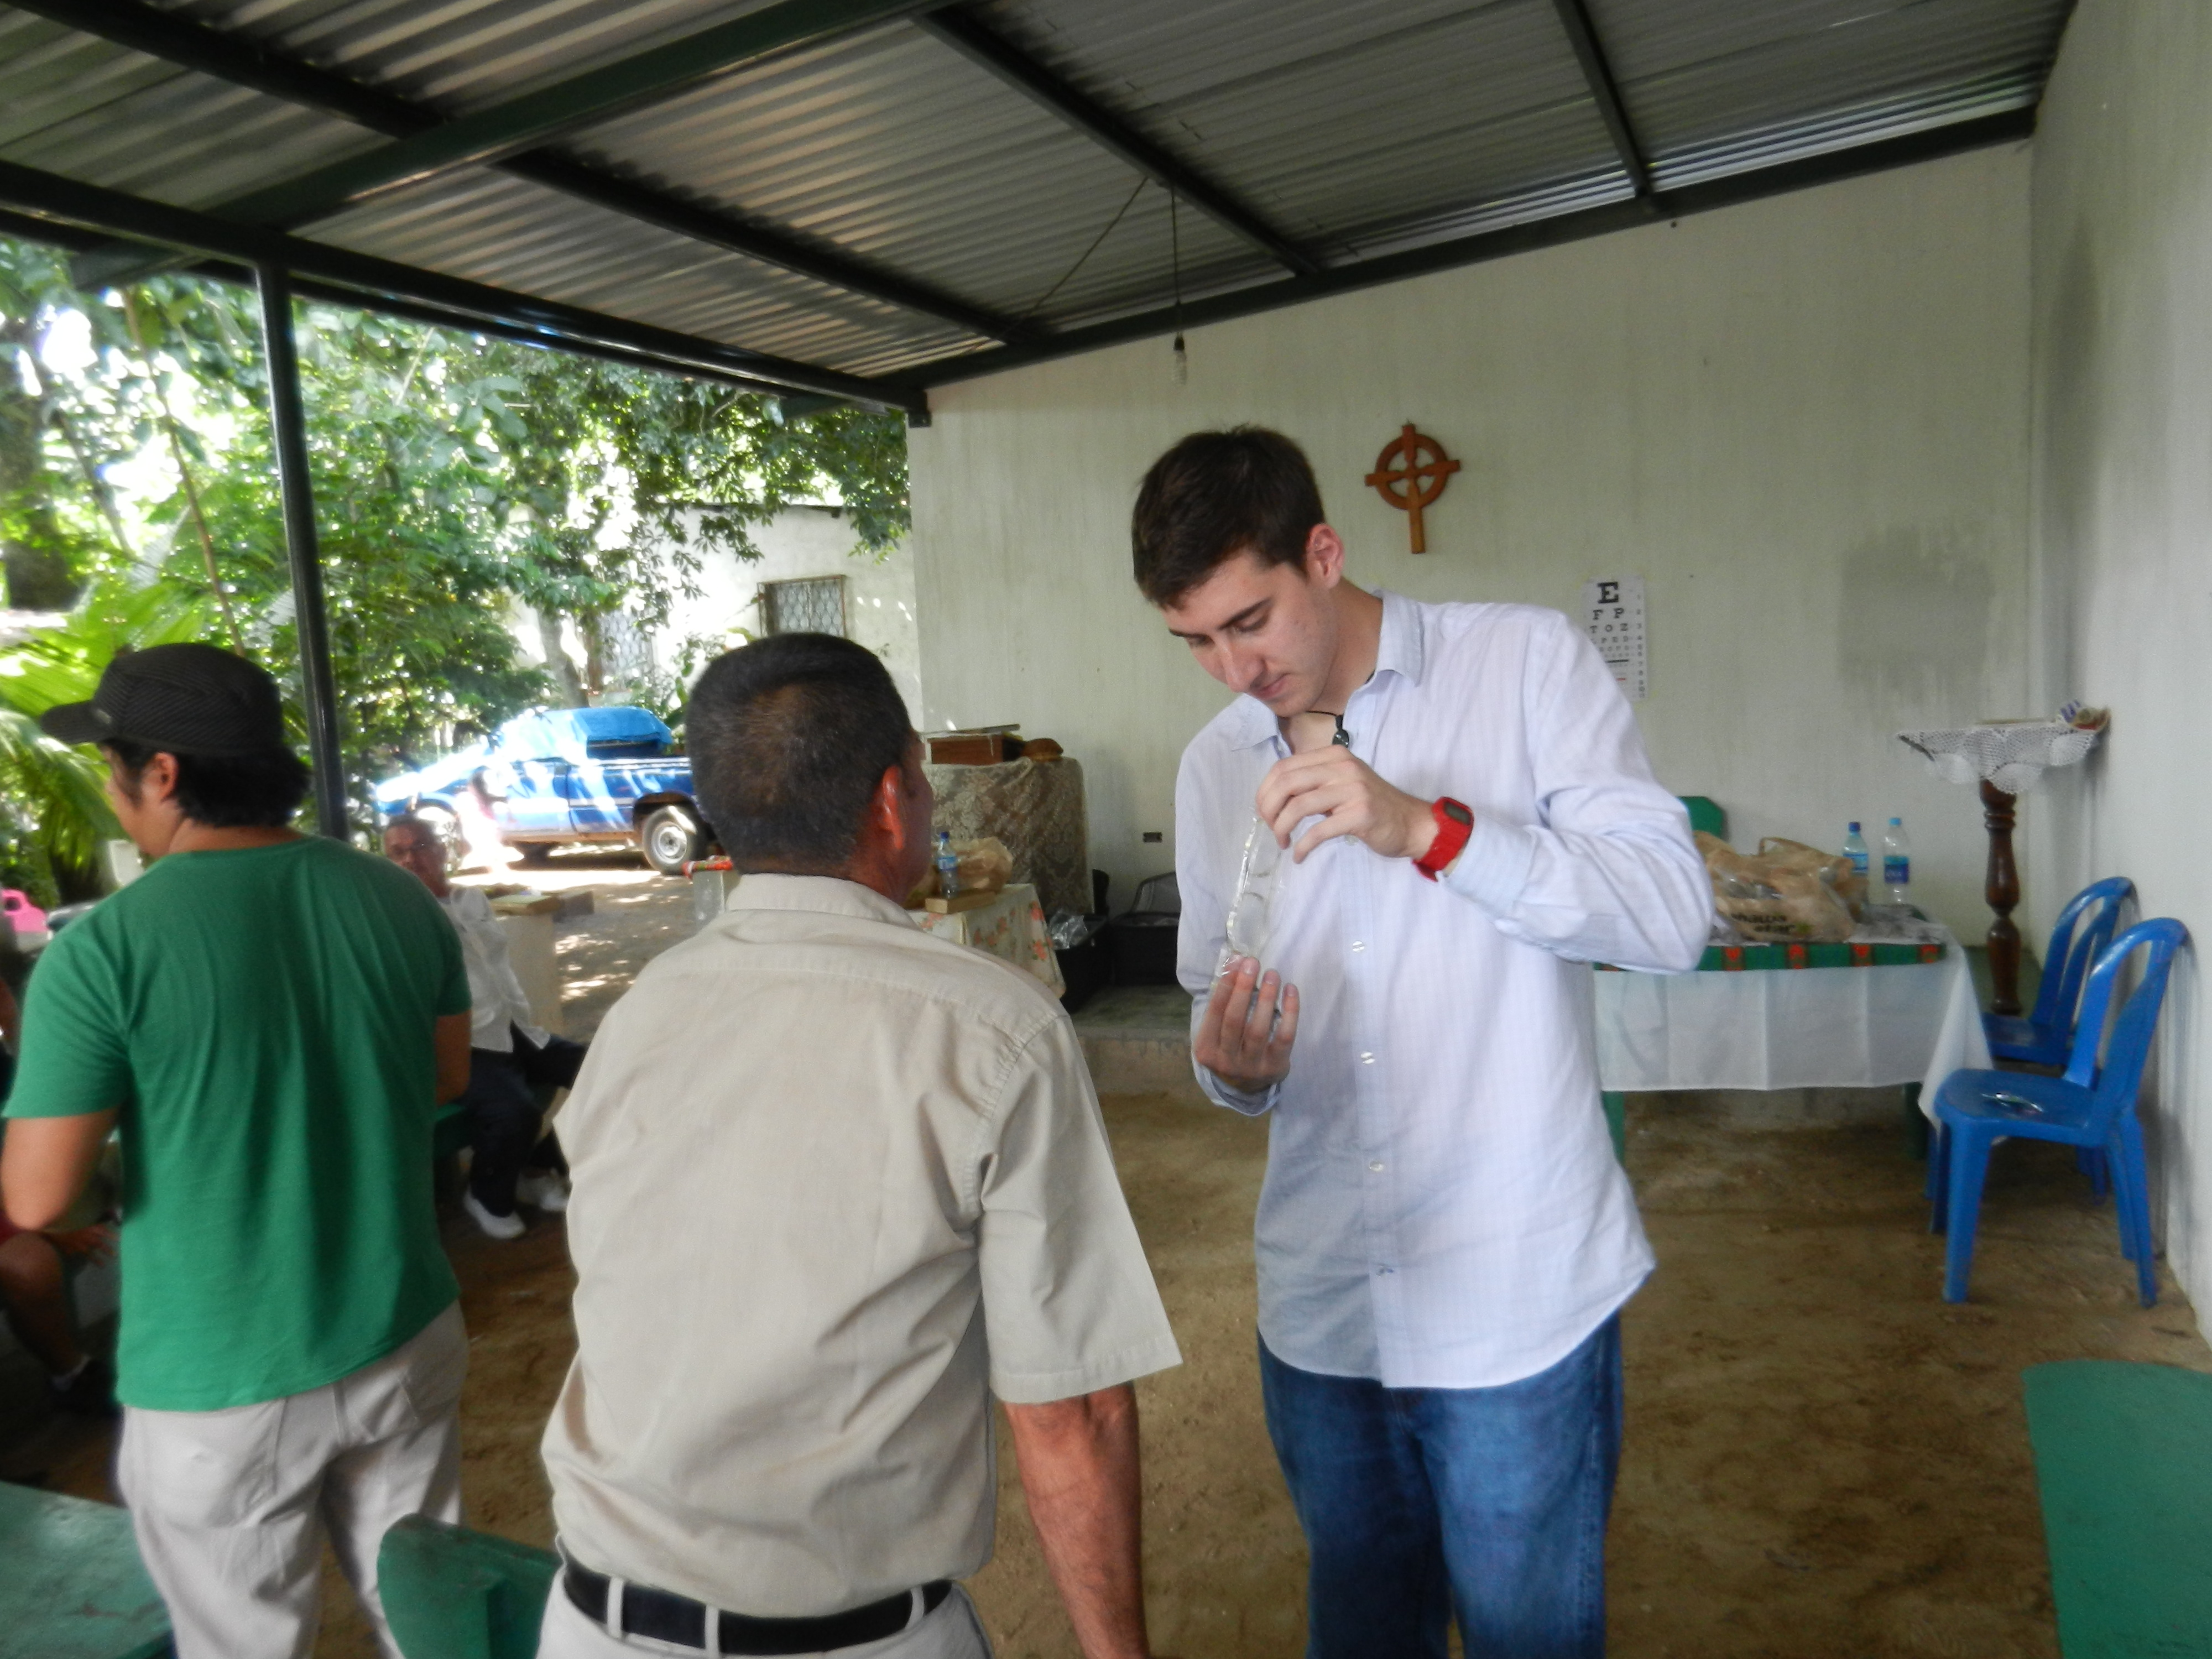 Glasses for Guatemala's founder Garred Greenberg helps distribute glasses at a makeshift clinic in rural Guatemala. (2013)